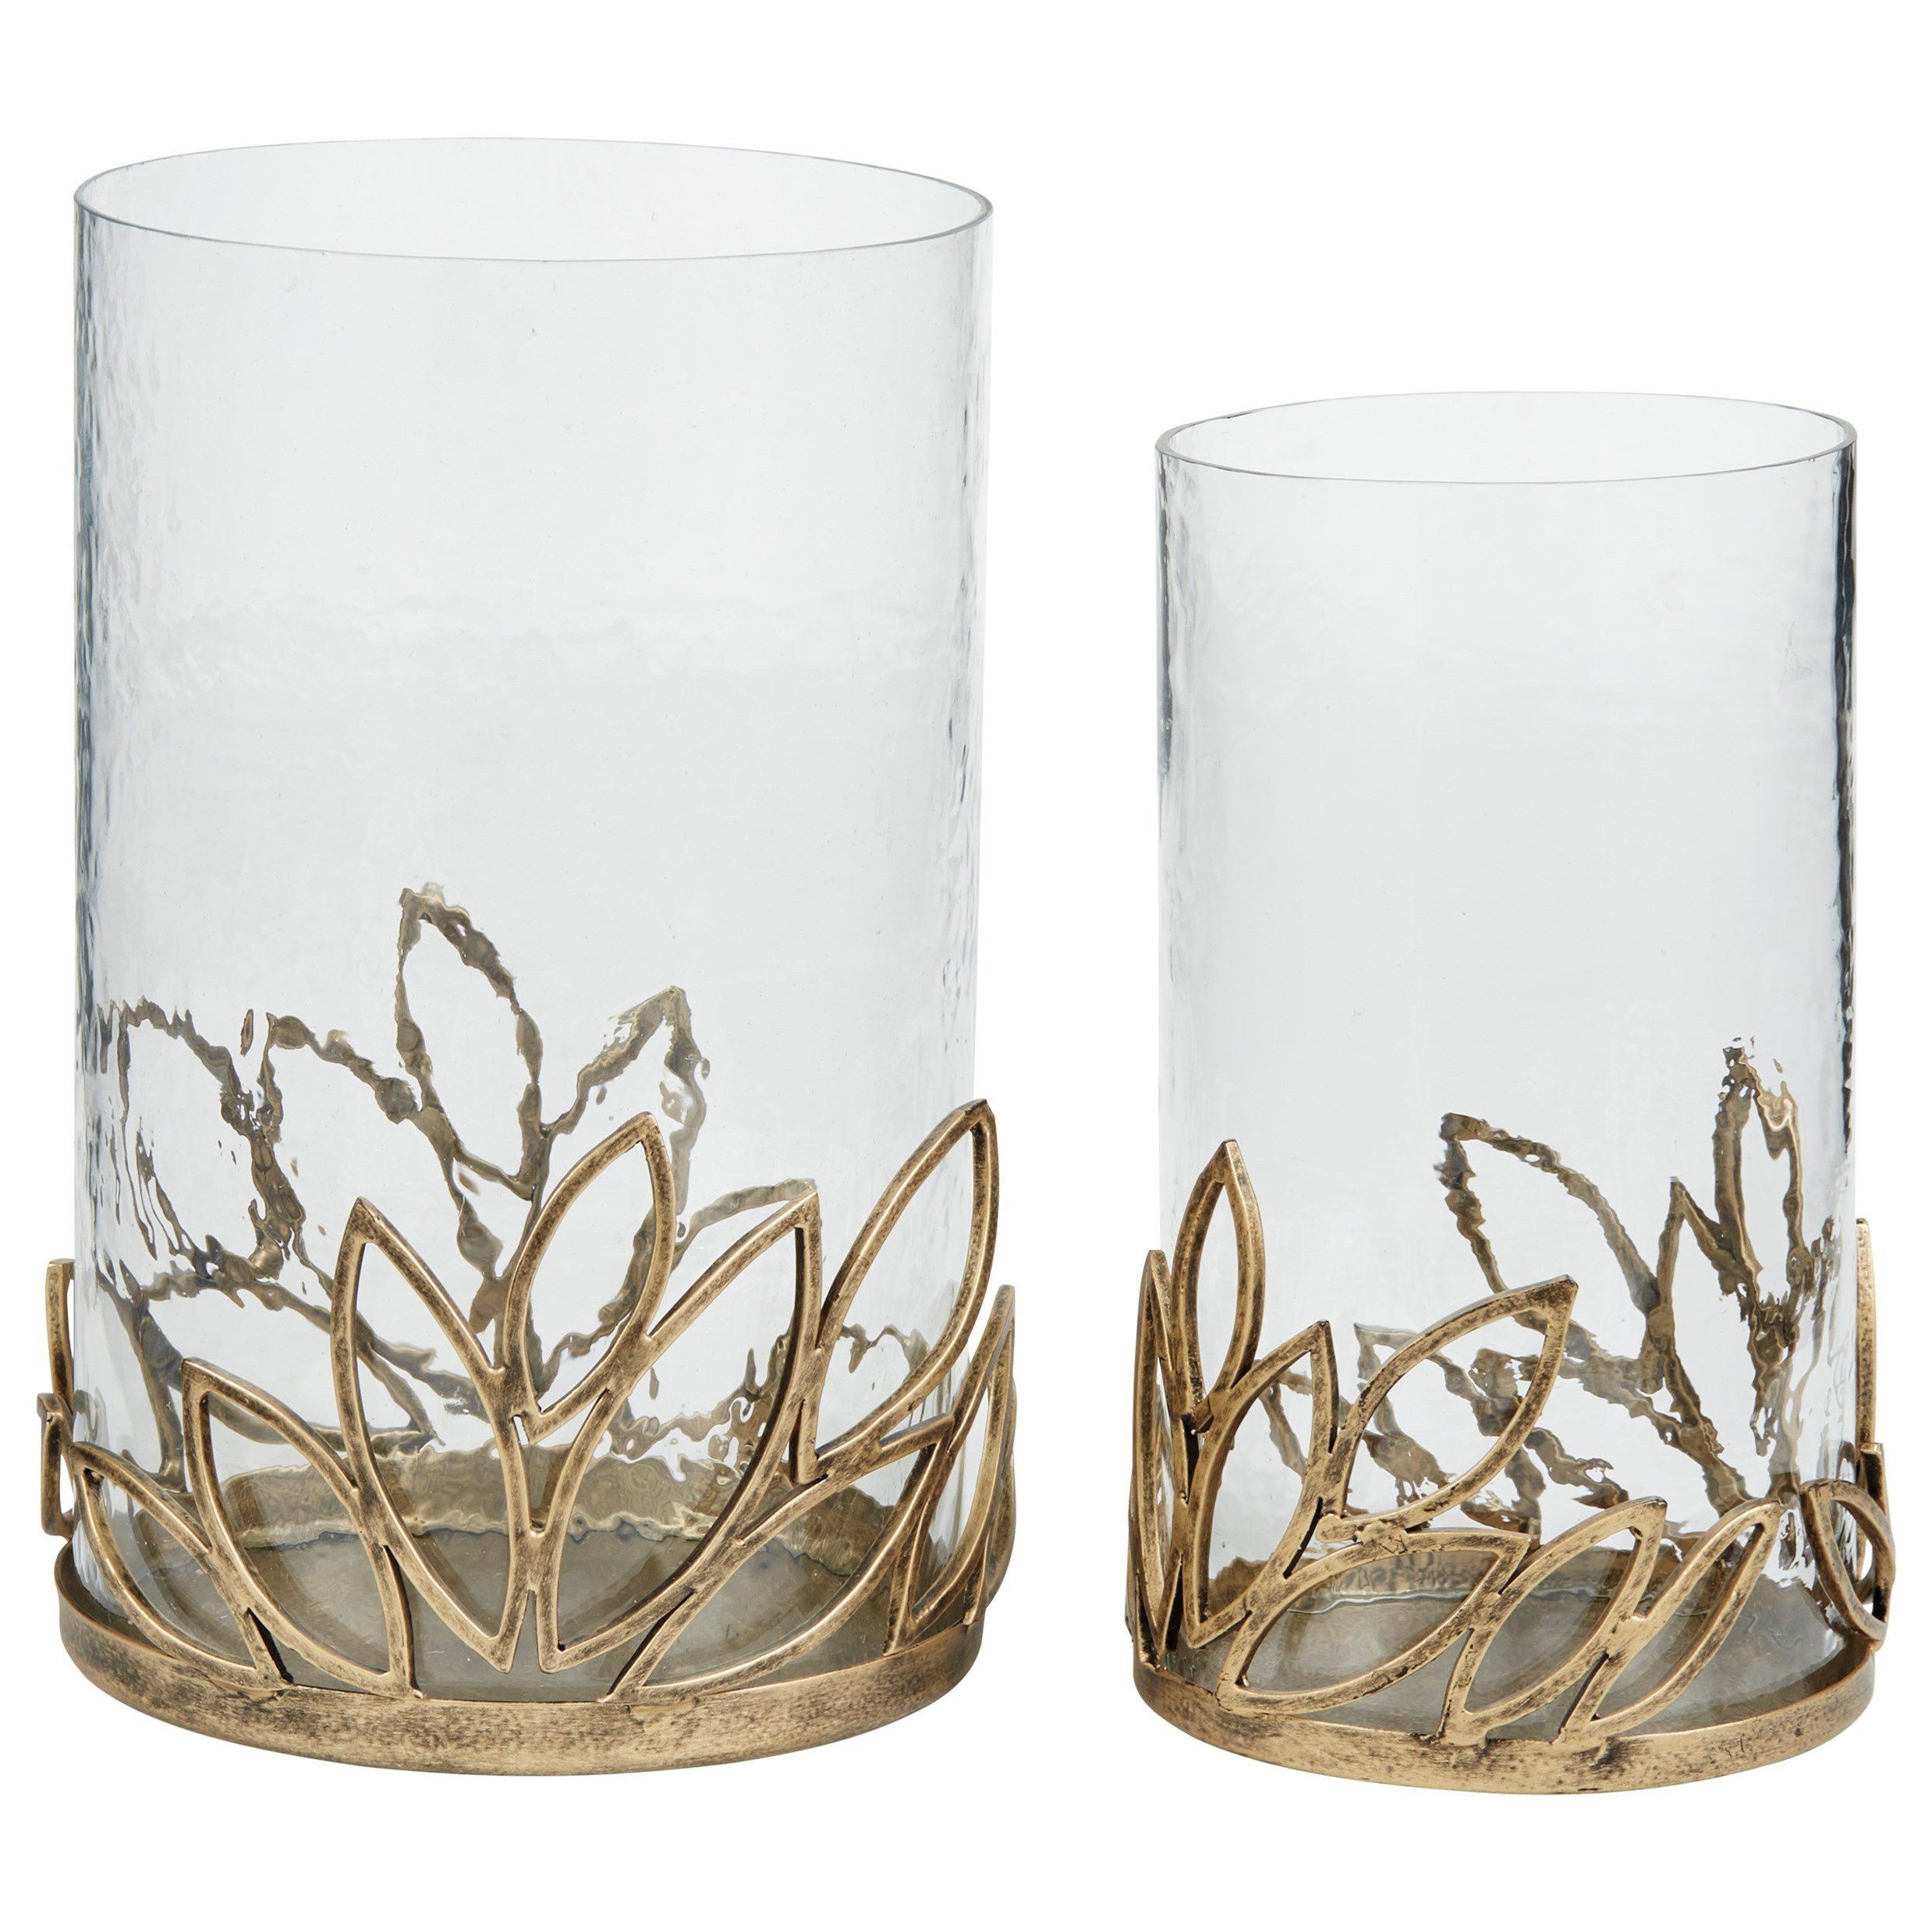 Accents Pascal Antique Gold Finish Candle Holder Set by Signature Design by Ashley at Carolina Direct